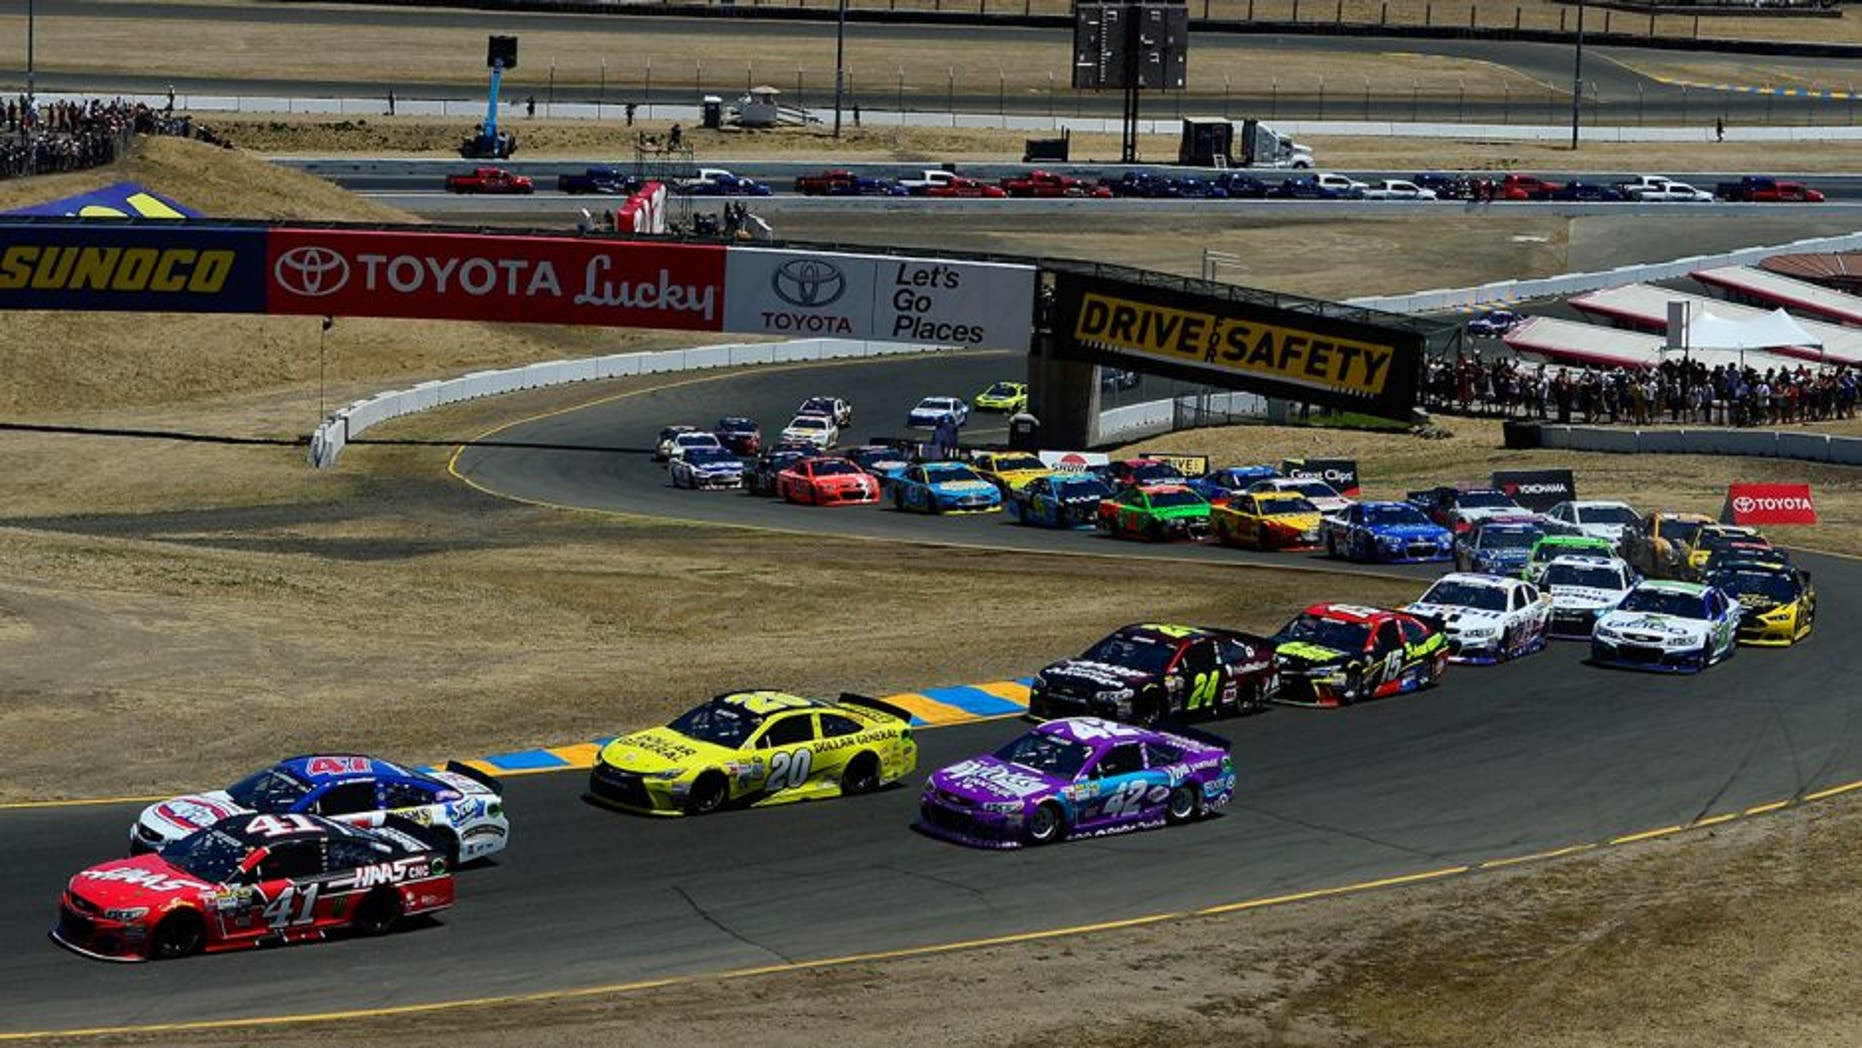 SONOMA, CA - JUNE 28: Kurt Busch, driver of the #41 Haas Automation Chevrolet, and AJ Allmendinger, driver of the #47 Kingsford Charcoal Chevrolet, lead the field at the start of the NASCAR Sprint Cup Series Toyota/Save Mart 350 at Sonoma Raceway on June 28, 2015 in Sonoma, California. (Photo by Robert Laberge/Getty Images)